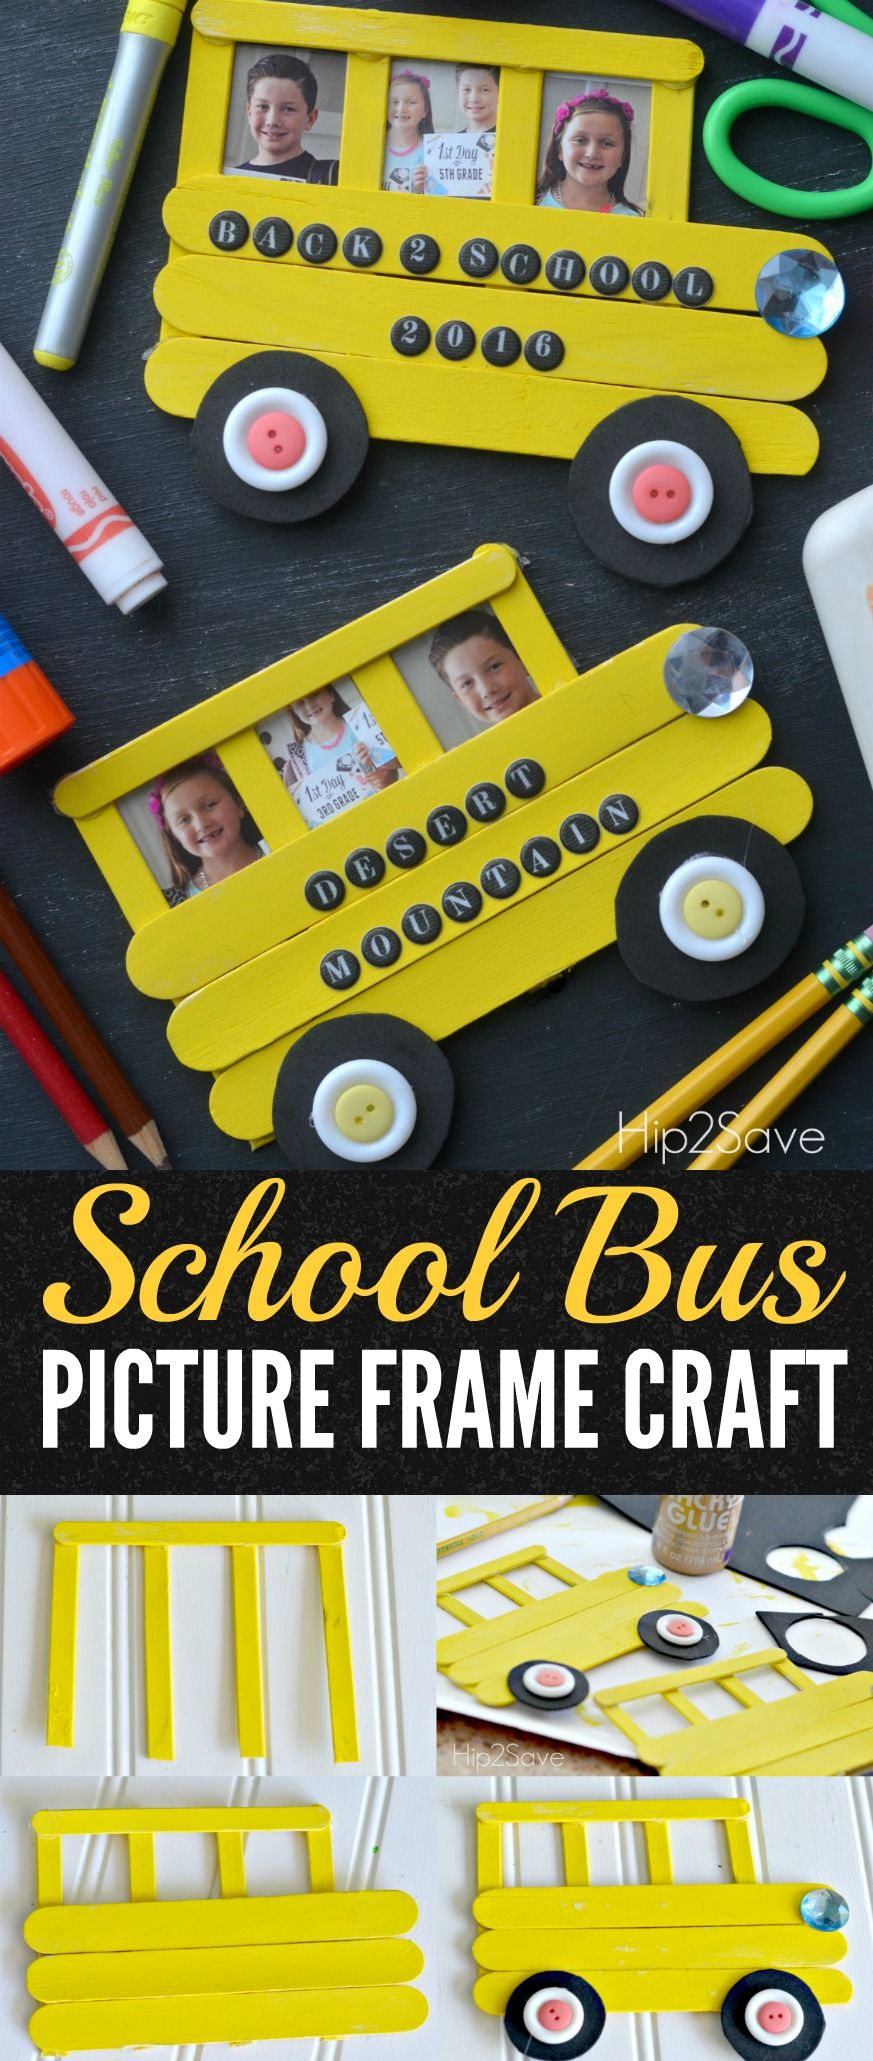 Craft Stick School Bus Back To School Idea Hip2save With